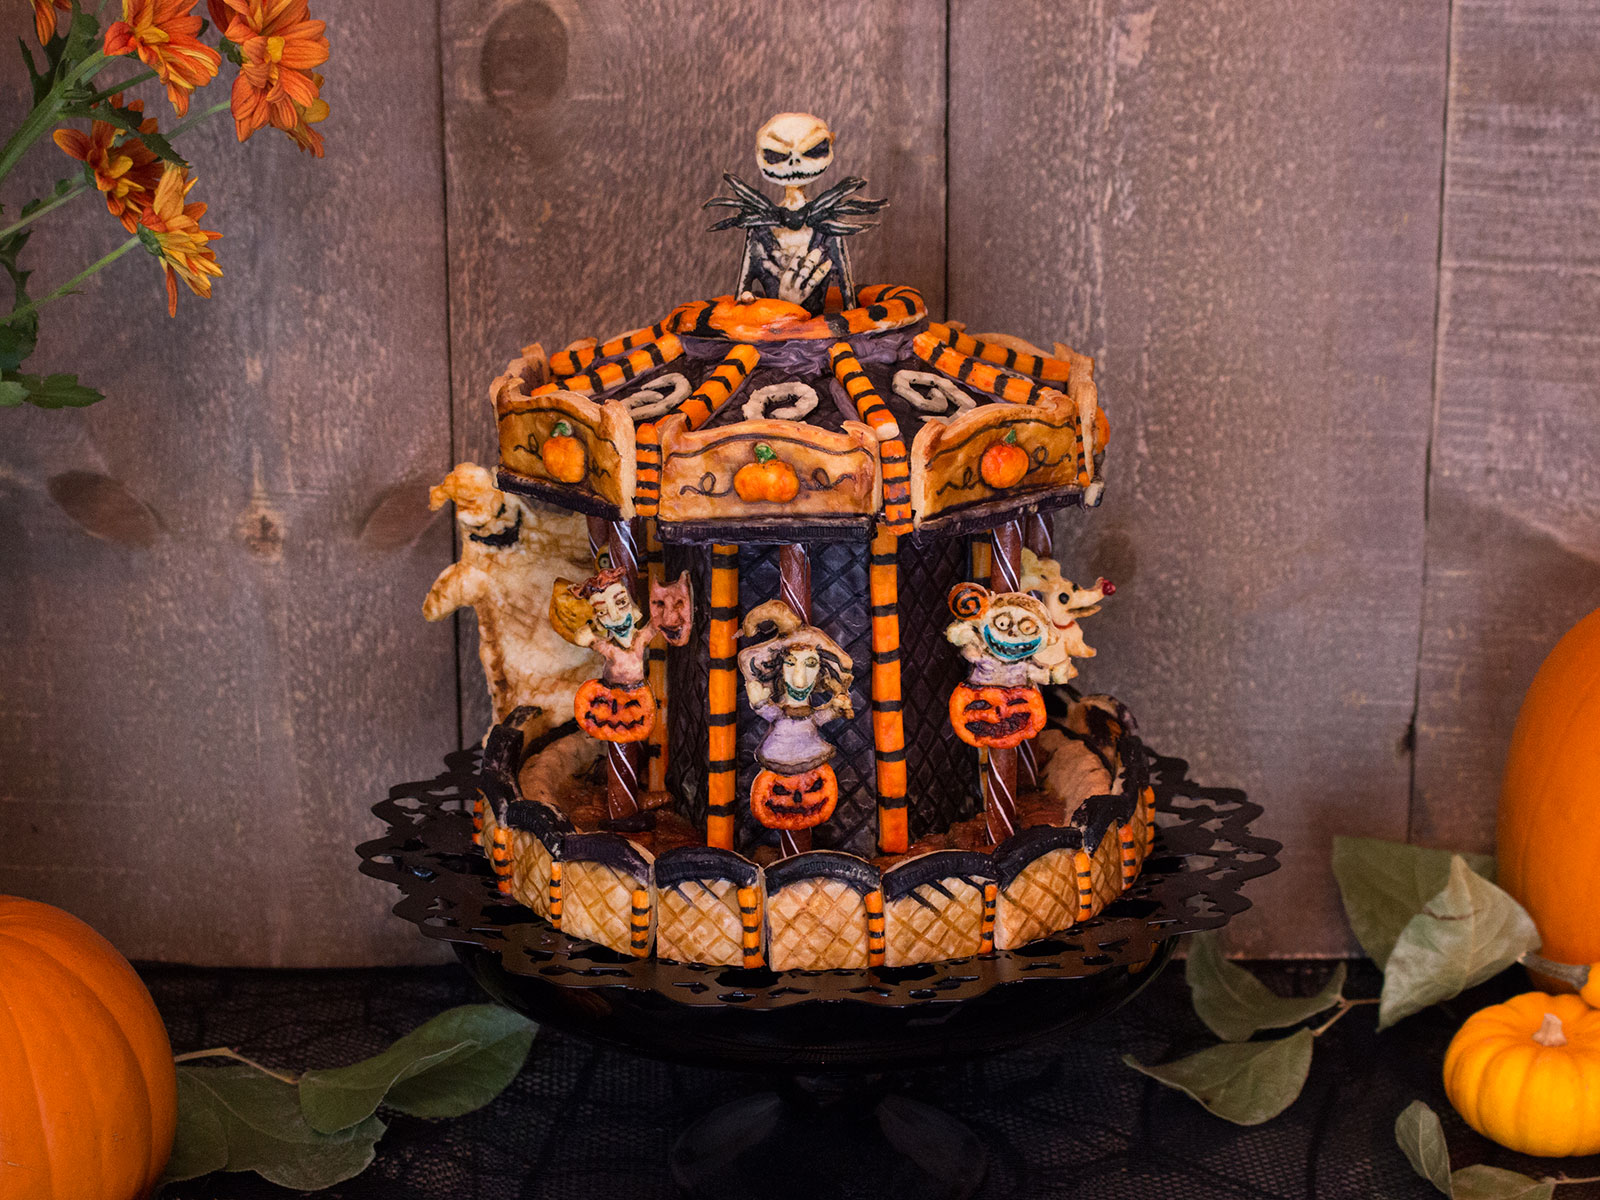 13 Halloween-Themed Pies That Are Sweet, Savory, and Spooky